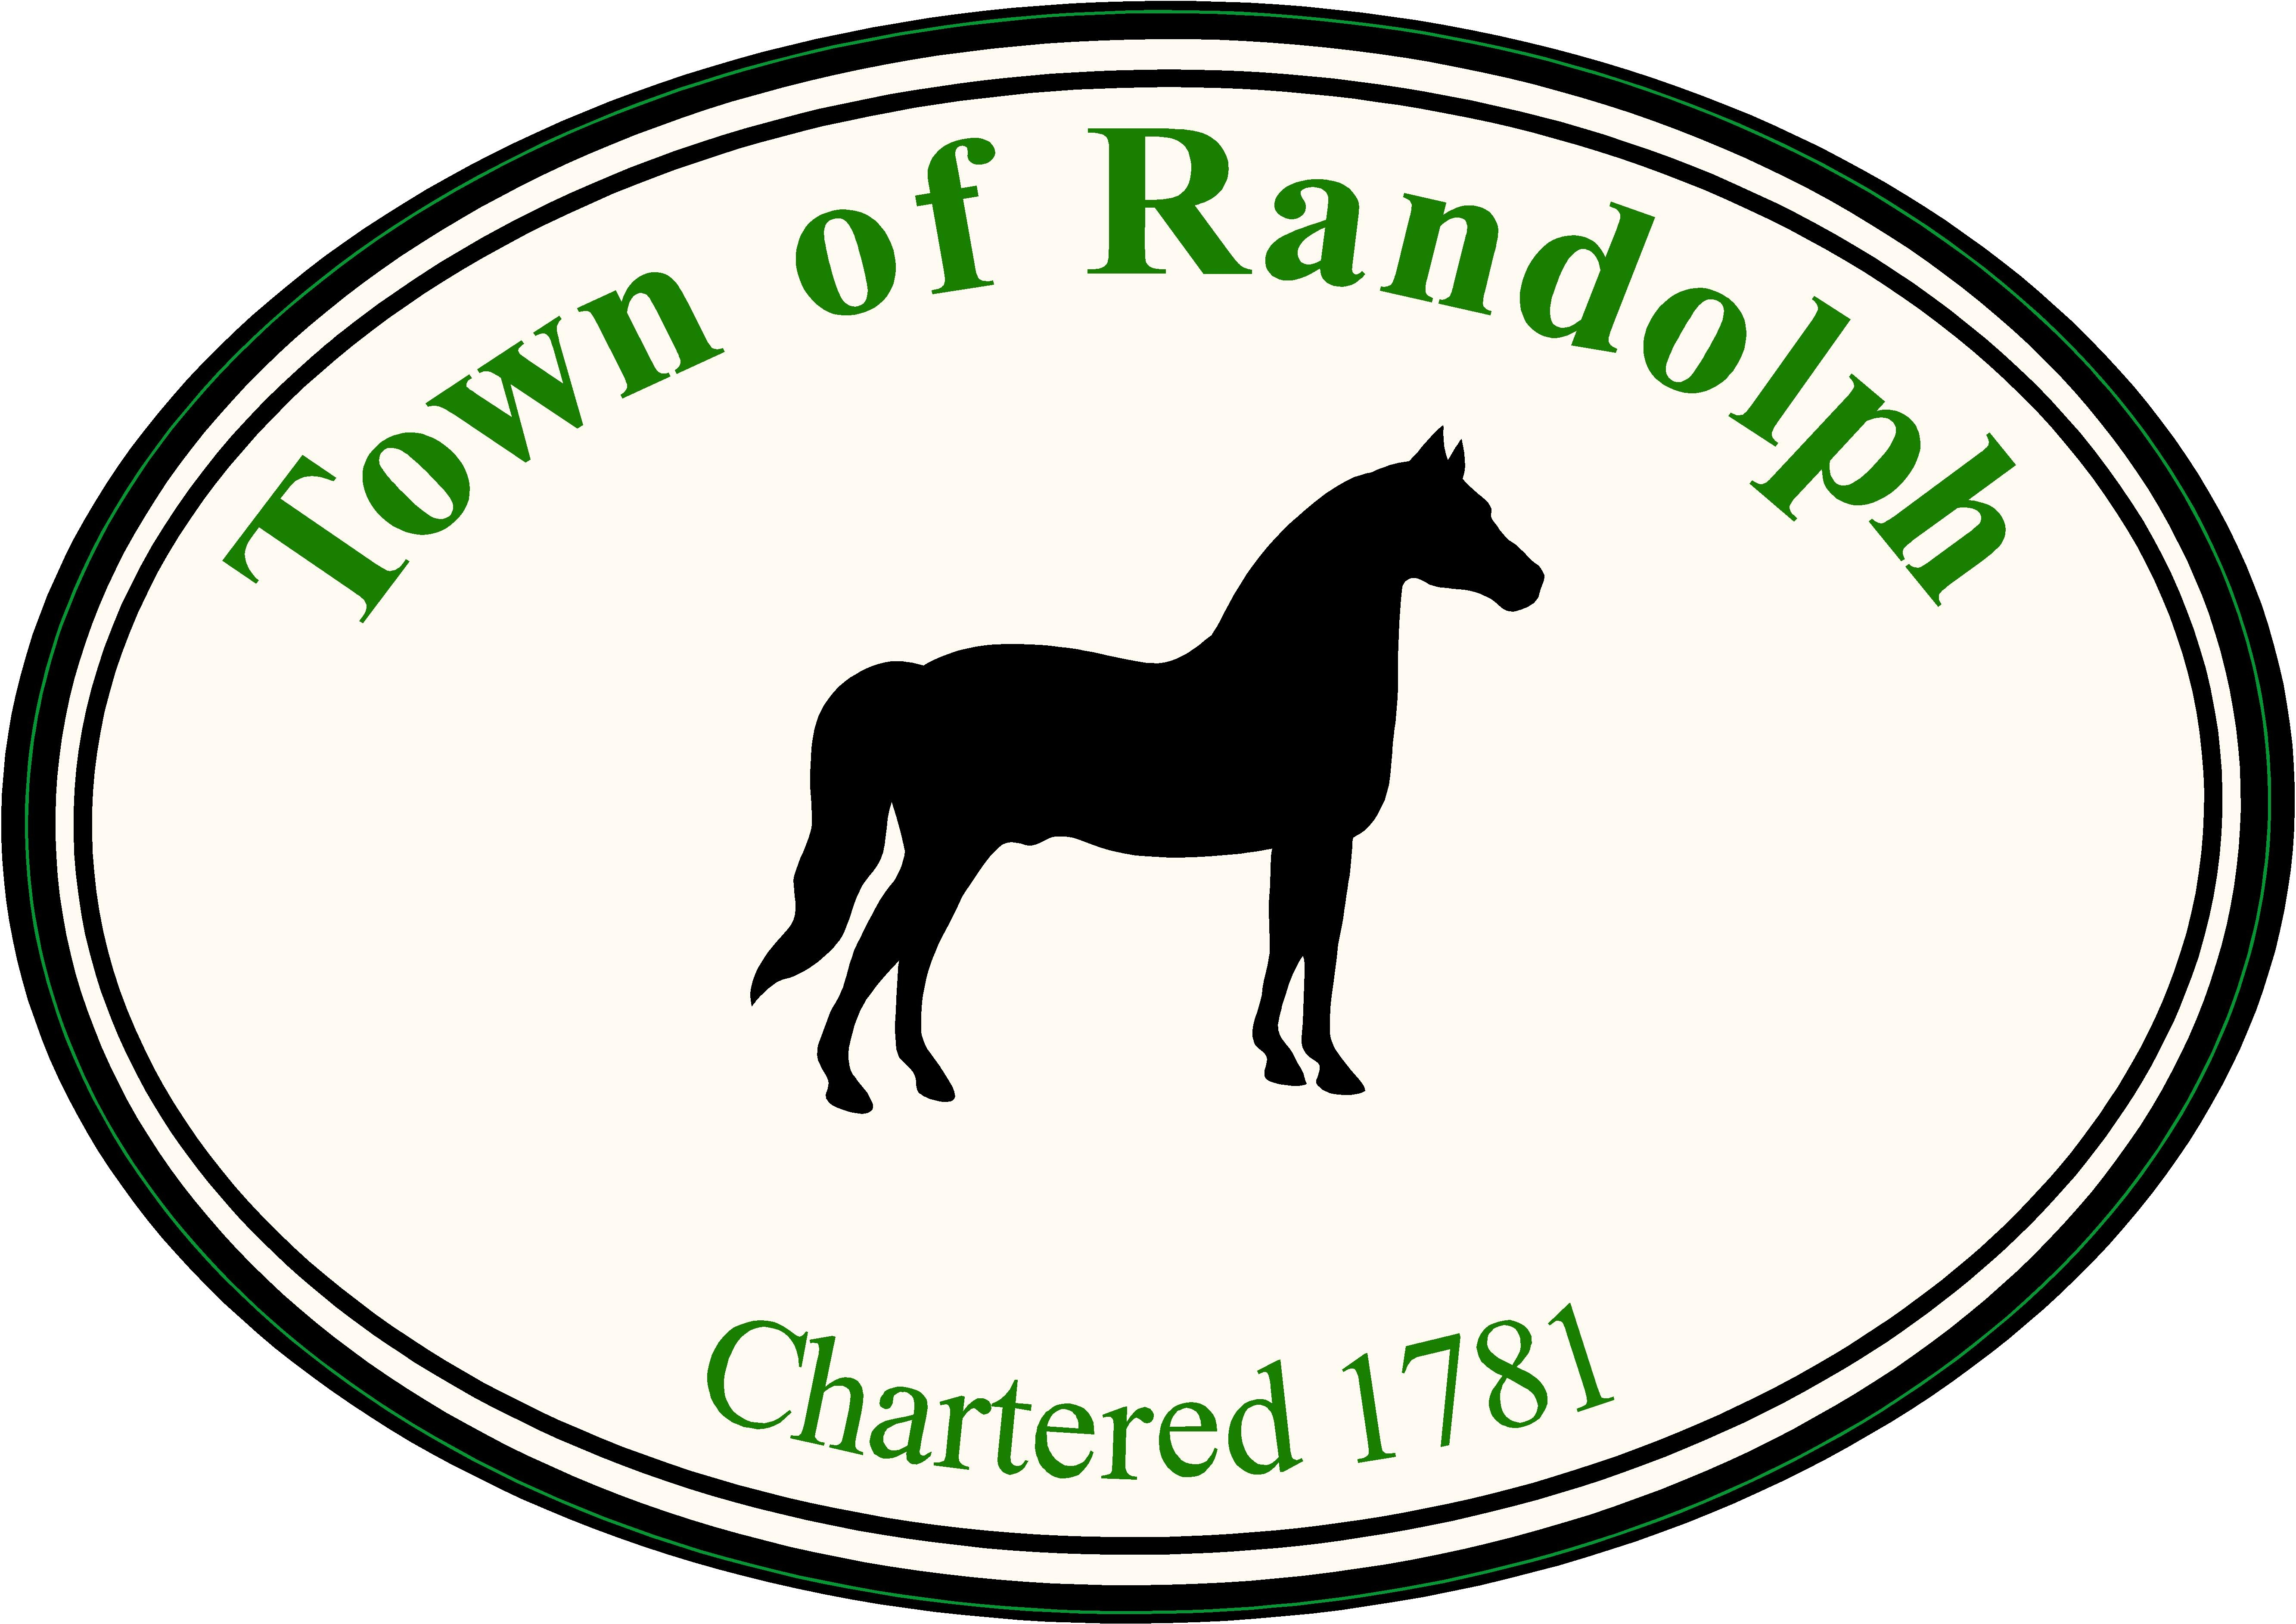 vermont jobs quality local jobs in seven days town of randolph